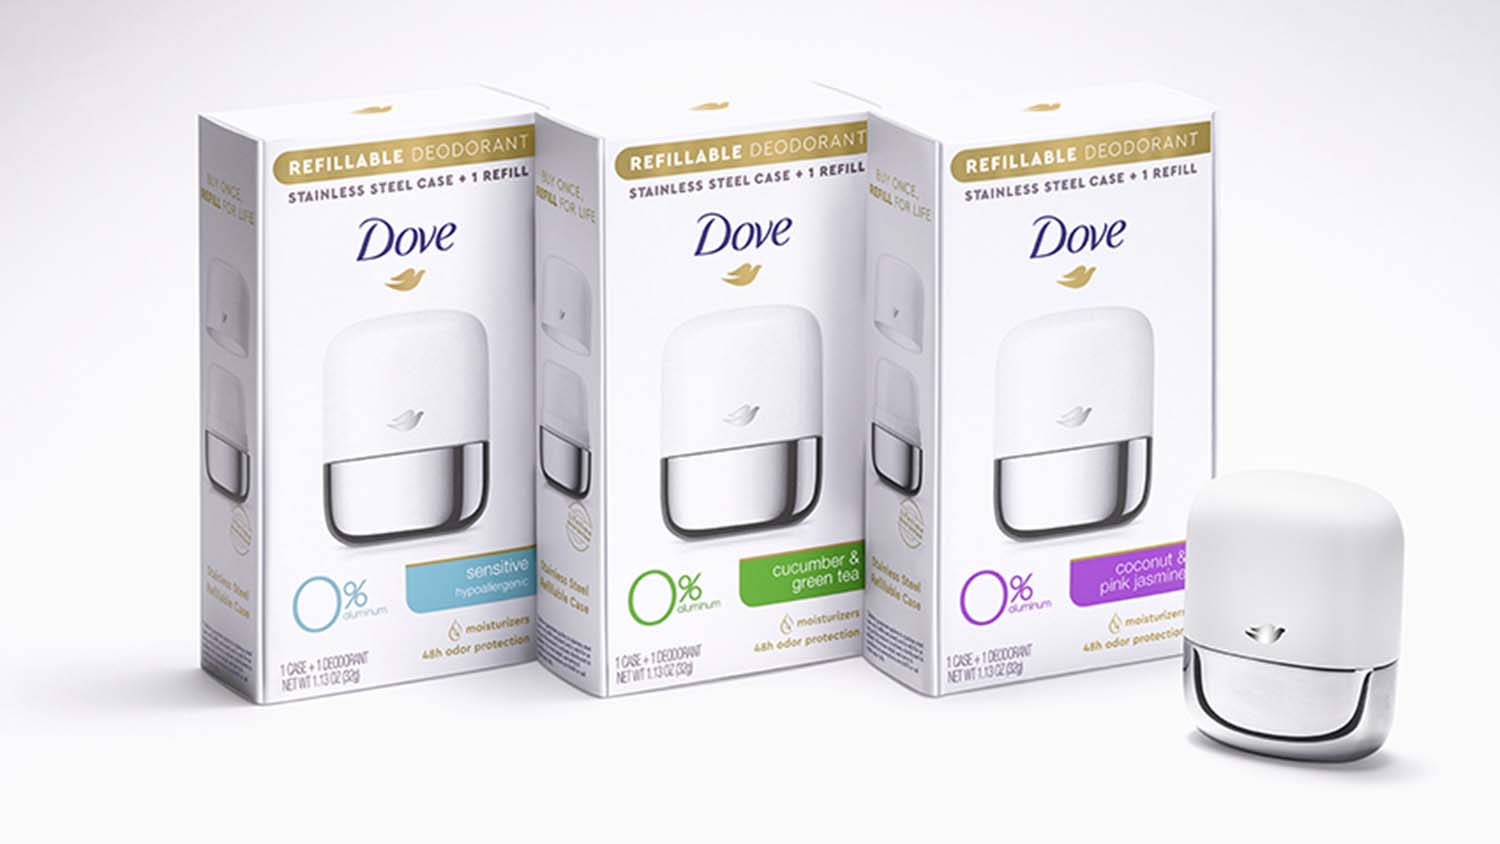 Dove refillable deodrant packaging